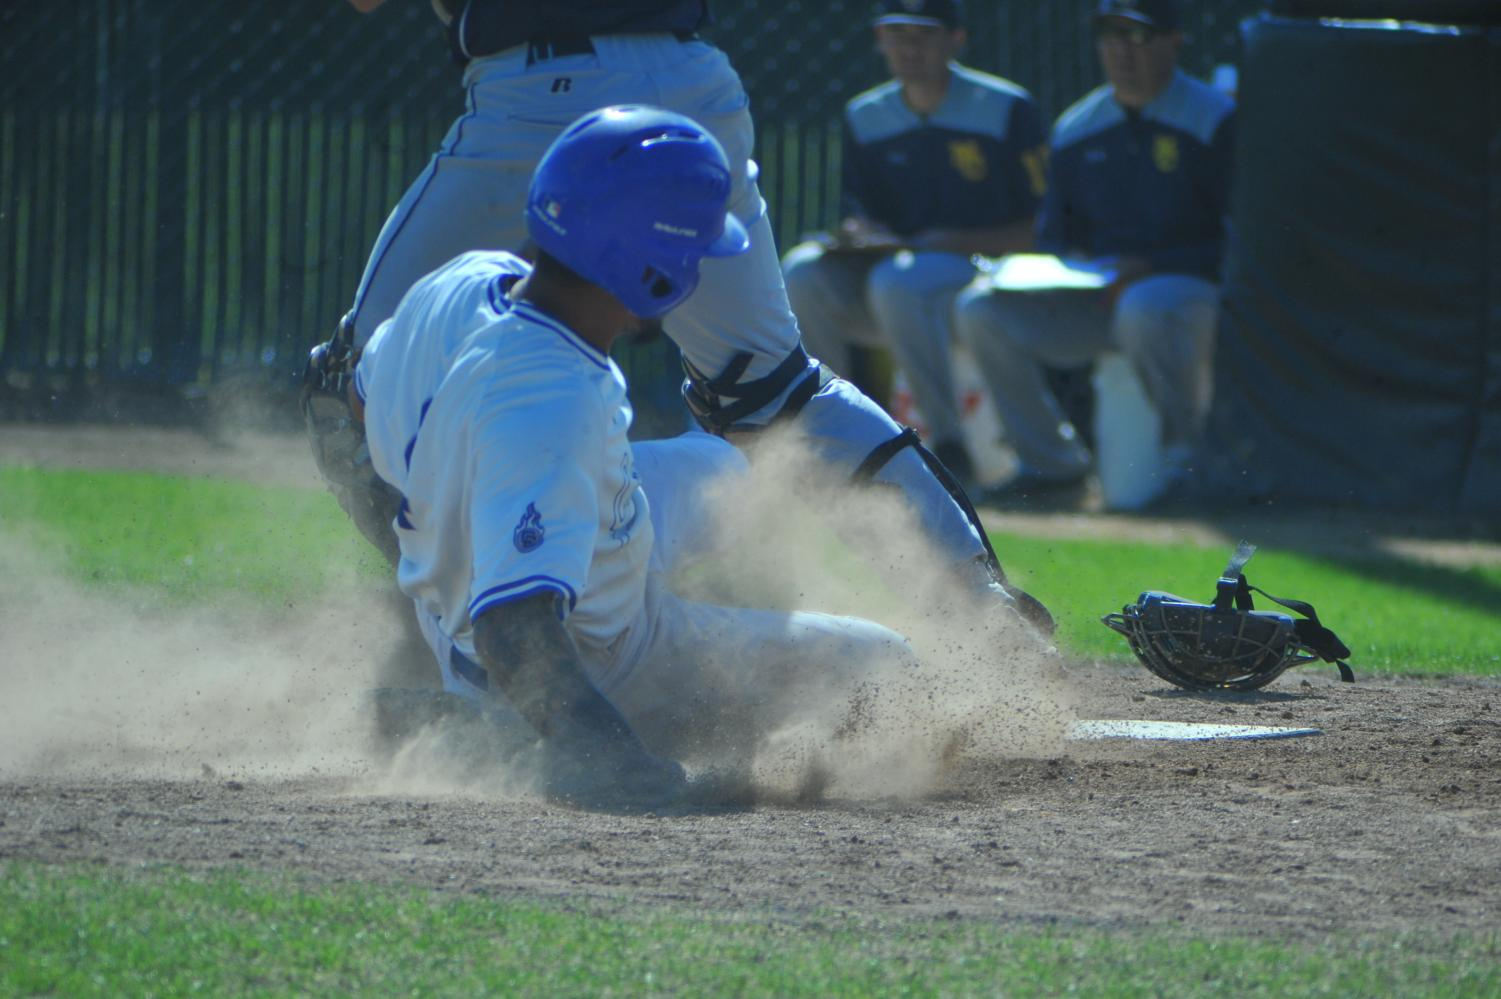 Comet second baseman Bryan Perez slides into home and was tagged out during Contra Costa College's 5-4 win against Mendocino College at Comet Baseball Field on April 19.